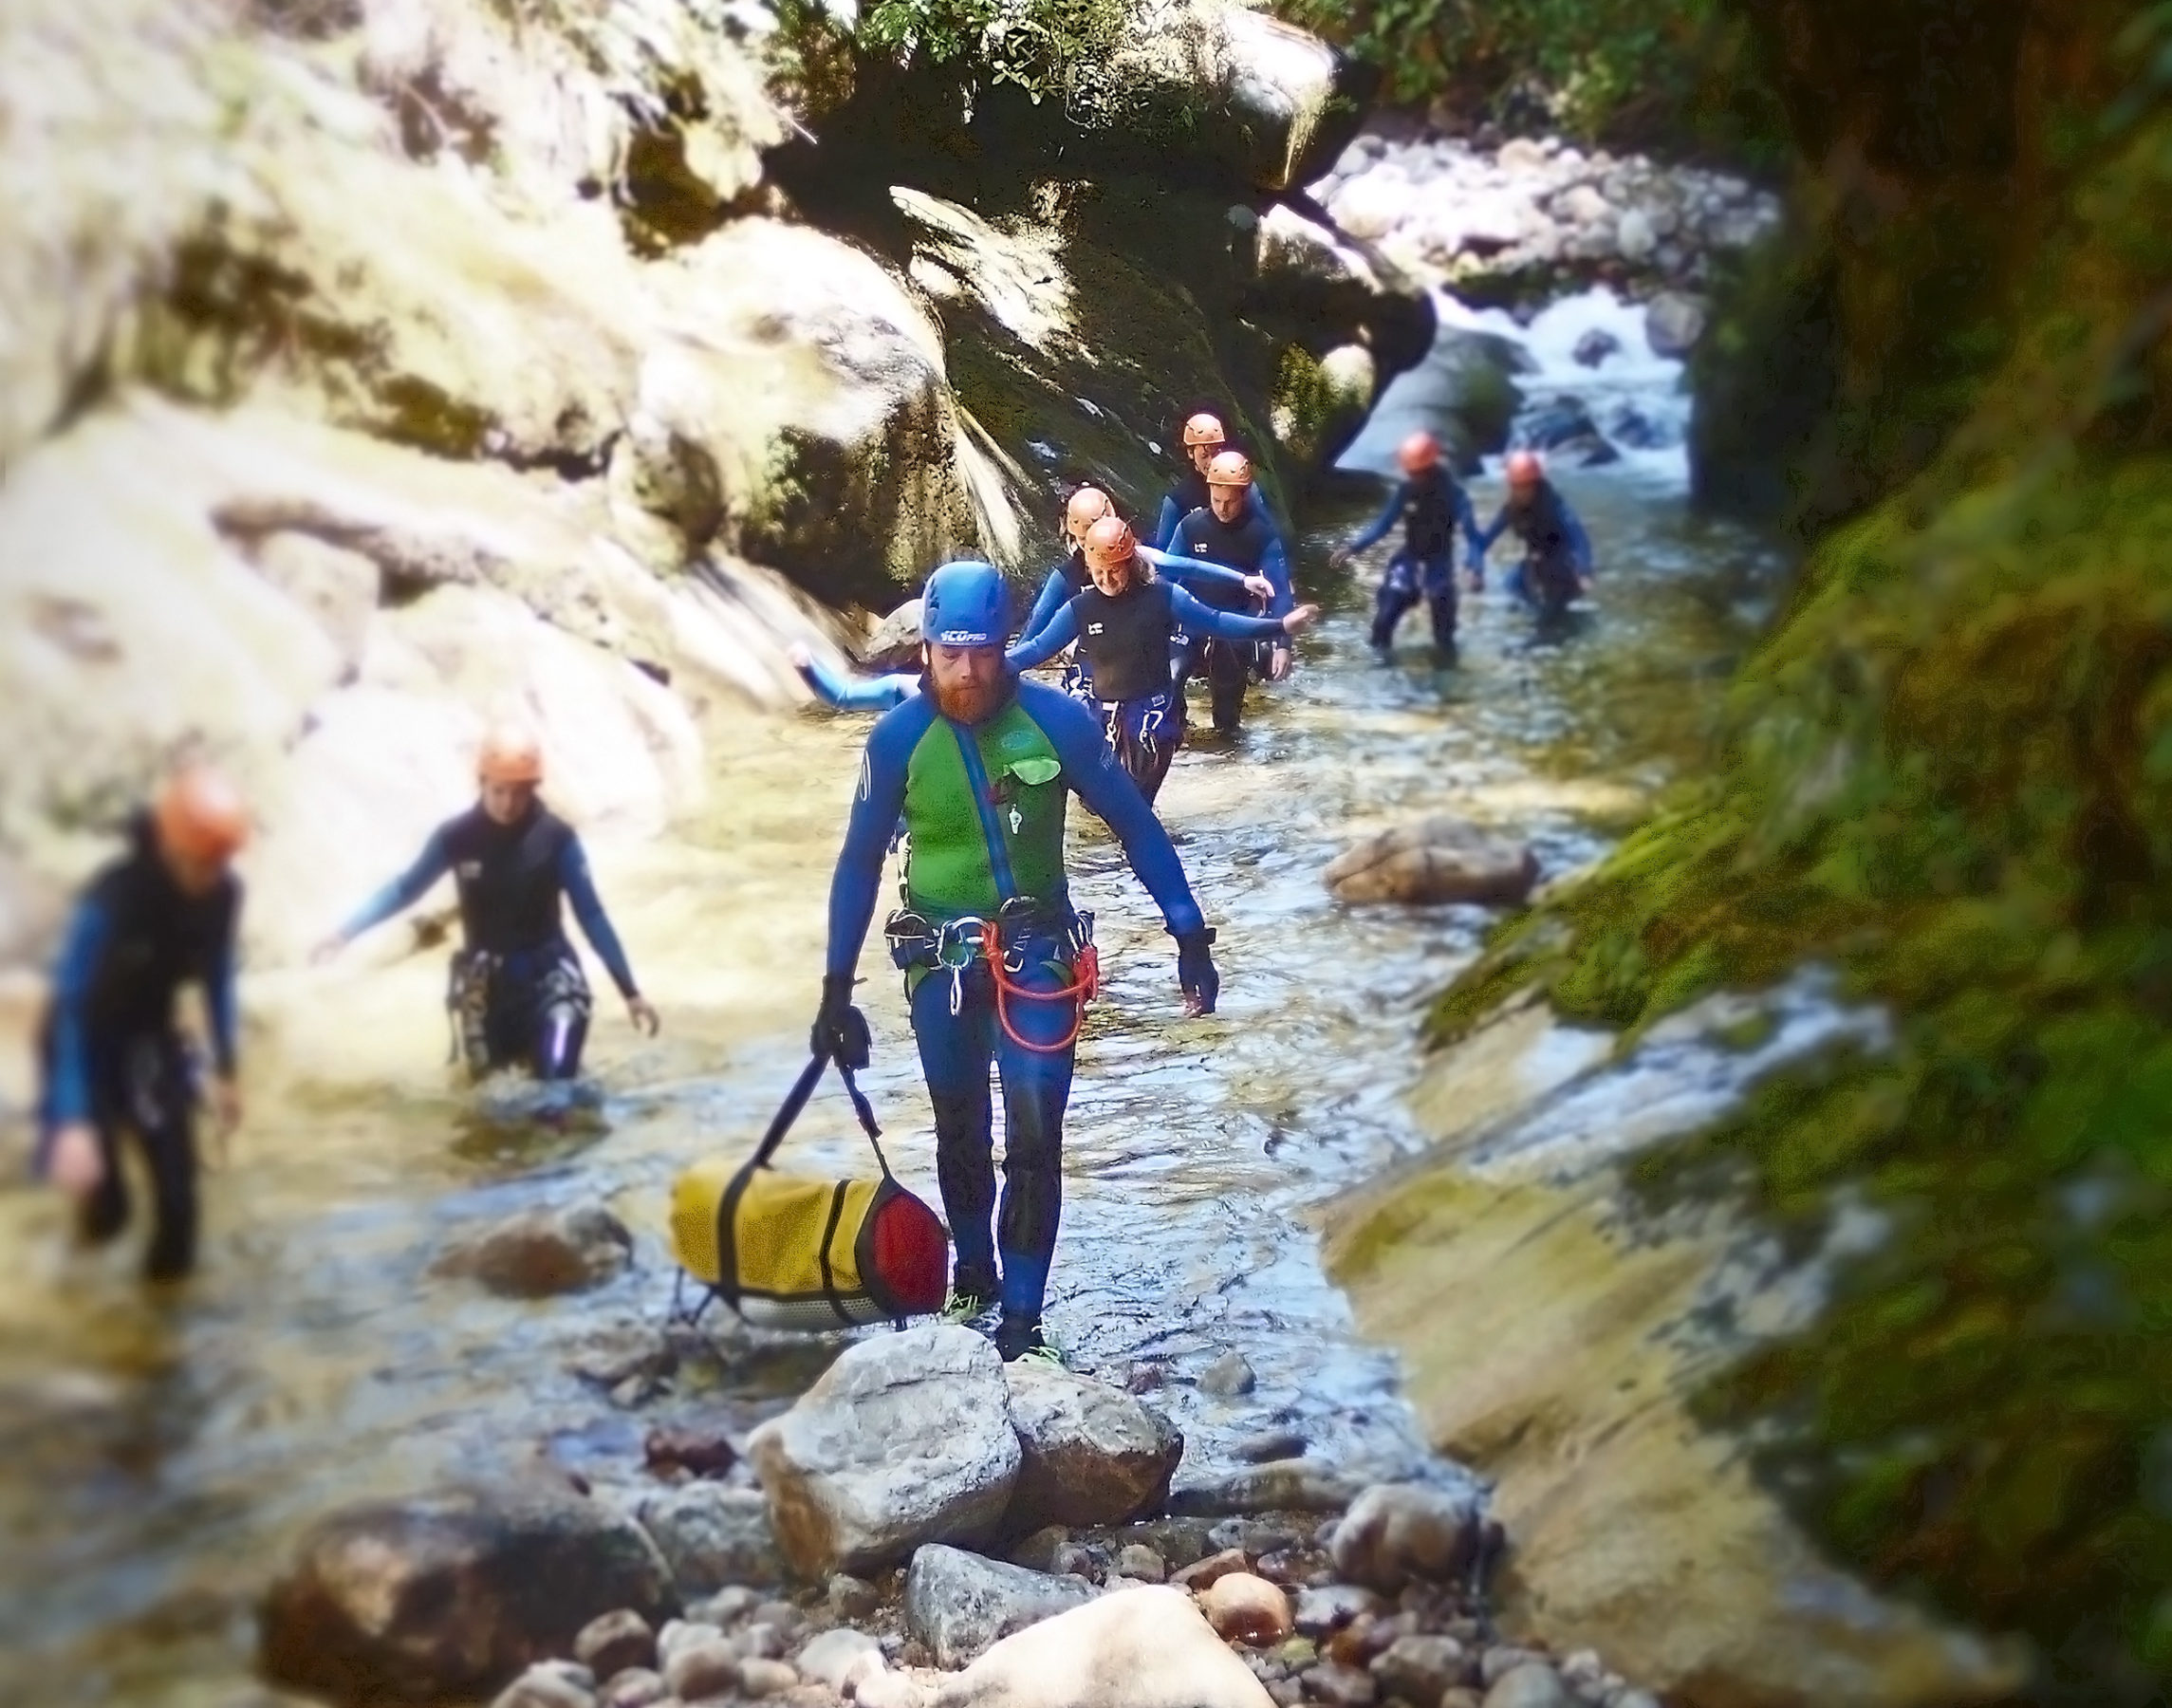 Canyoneer with a bag wading through a stream in a gorge leading a group at the Abel Tasman National Park